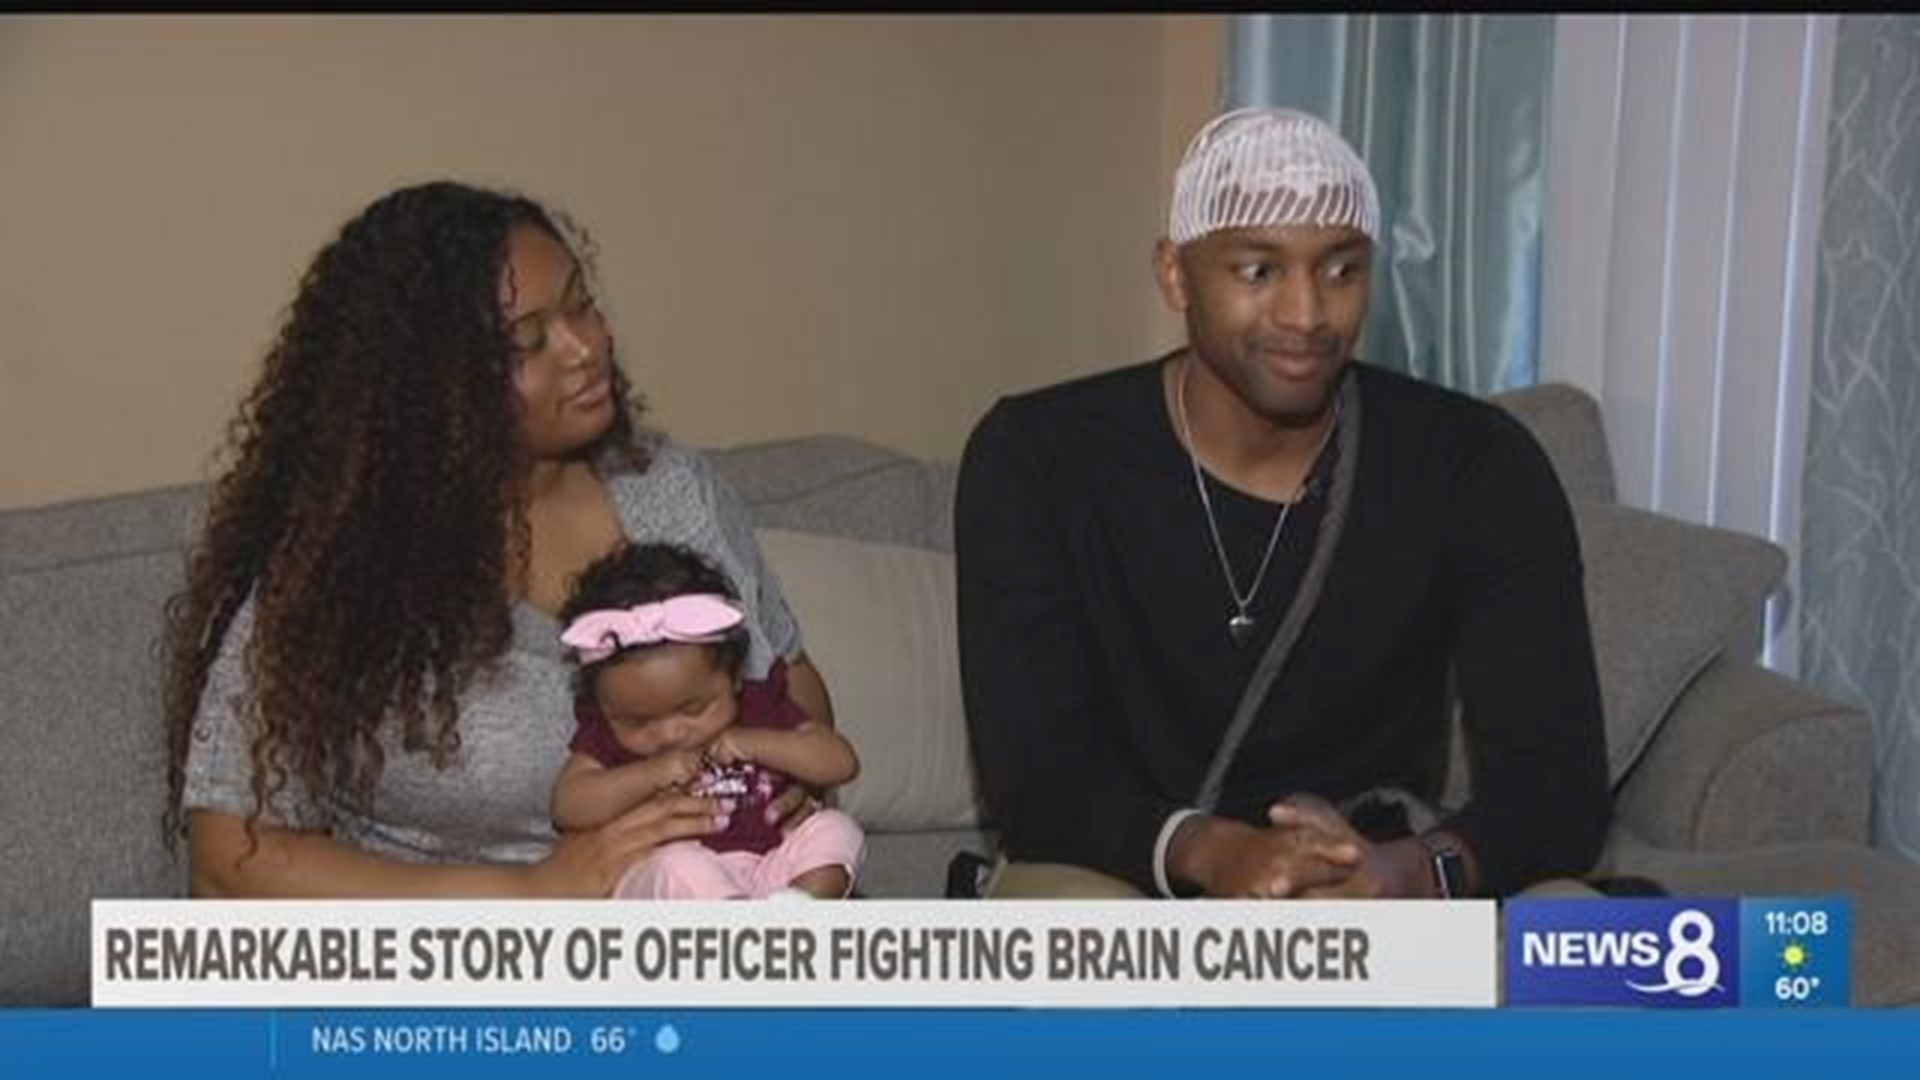 Remarkable Story Of An Oceanside Police Officer Fighting Brain